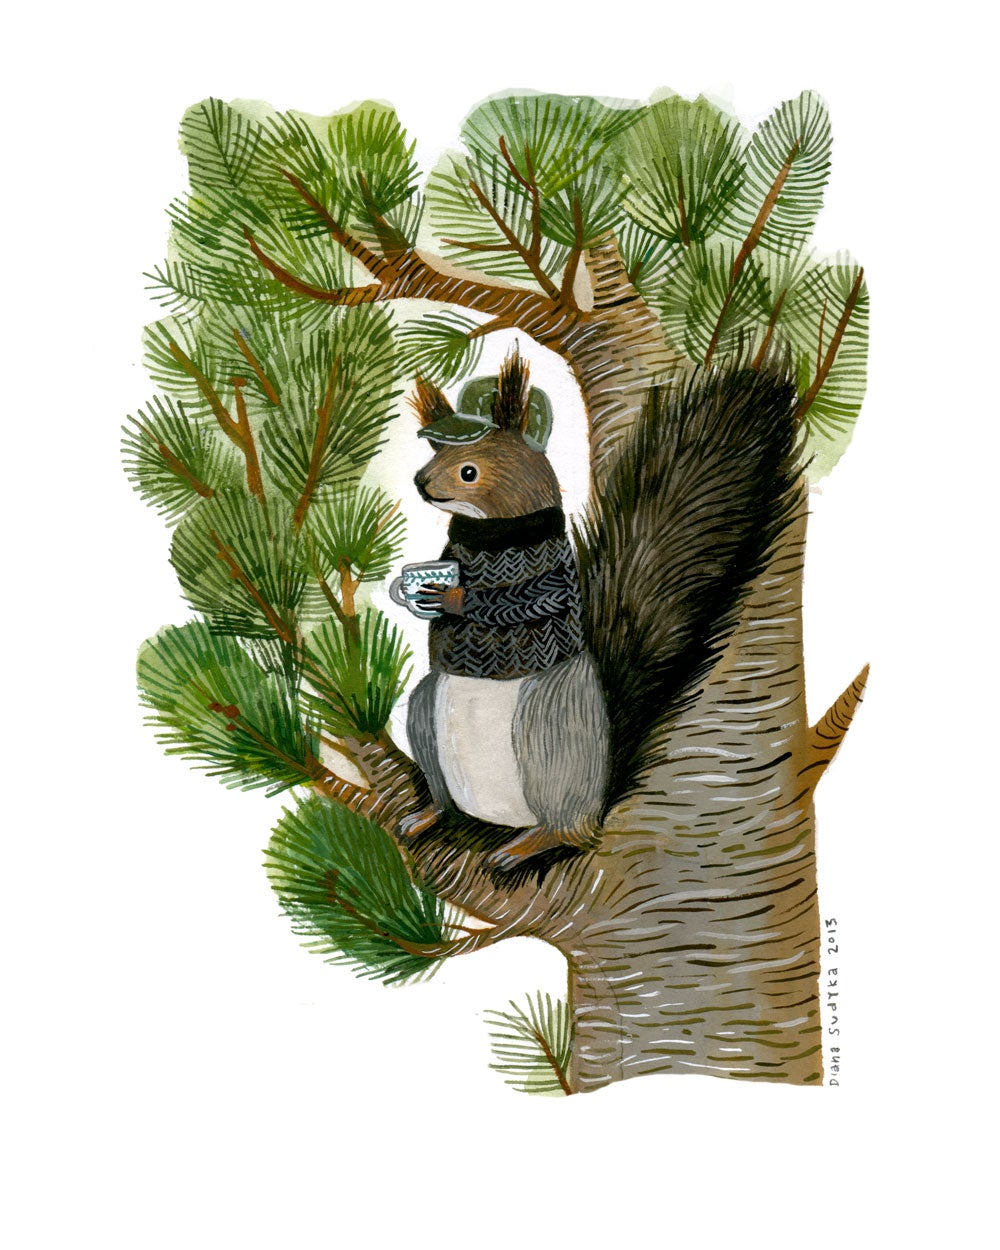 siberian squirrel and cup of tea archival inkjet print giclée